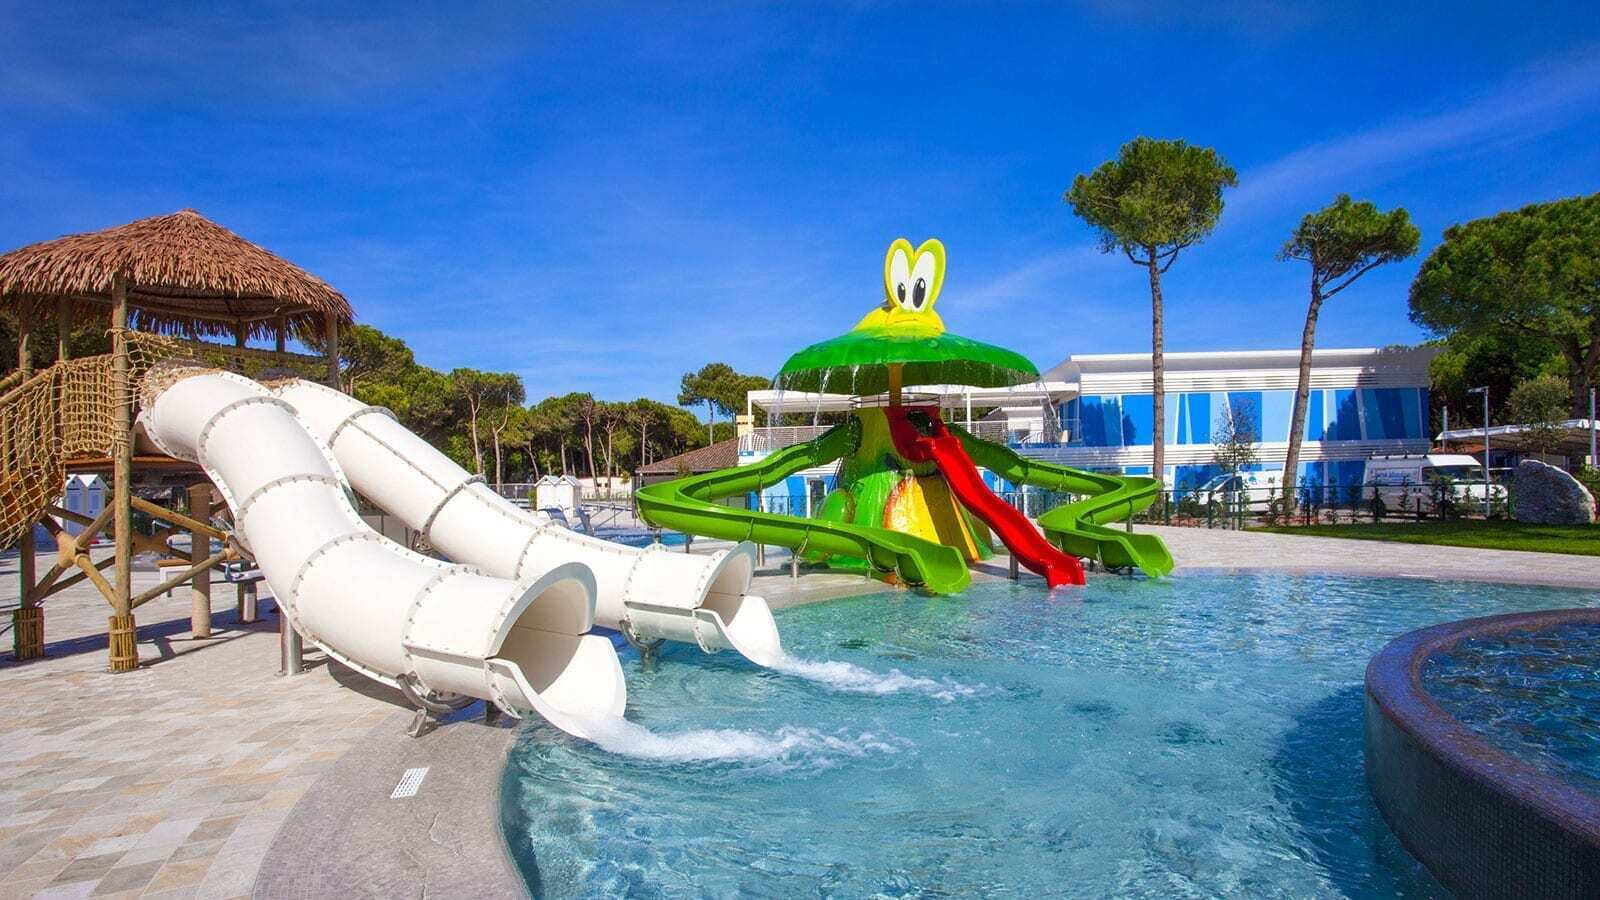 Camping Village Cavallino | Luxe Sanitair 5 Pers.